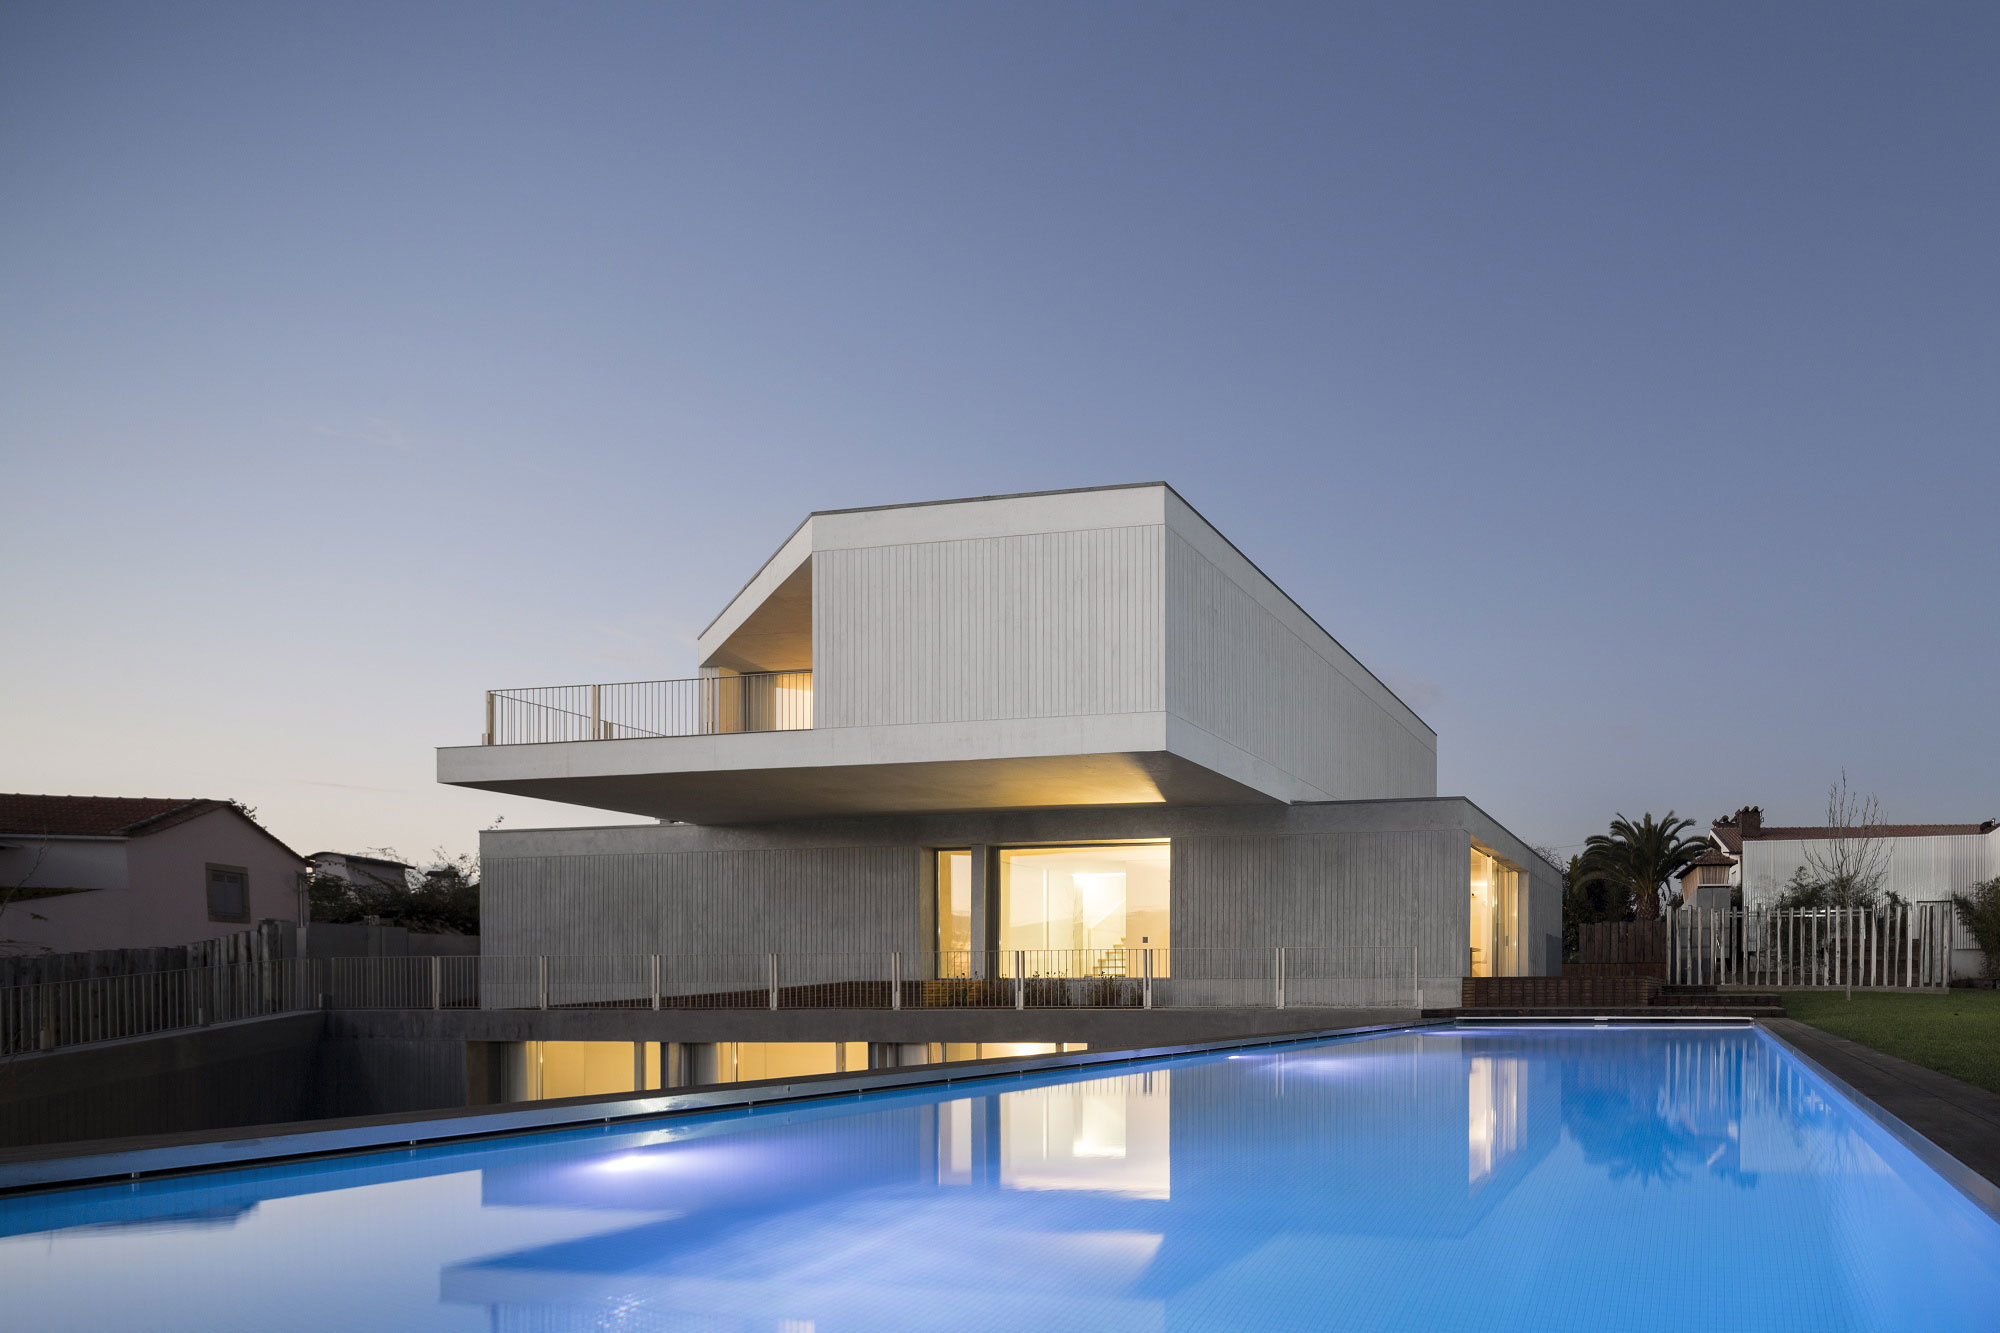 House in Travanca by Nelson Resende